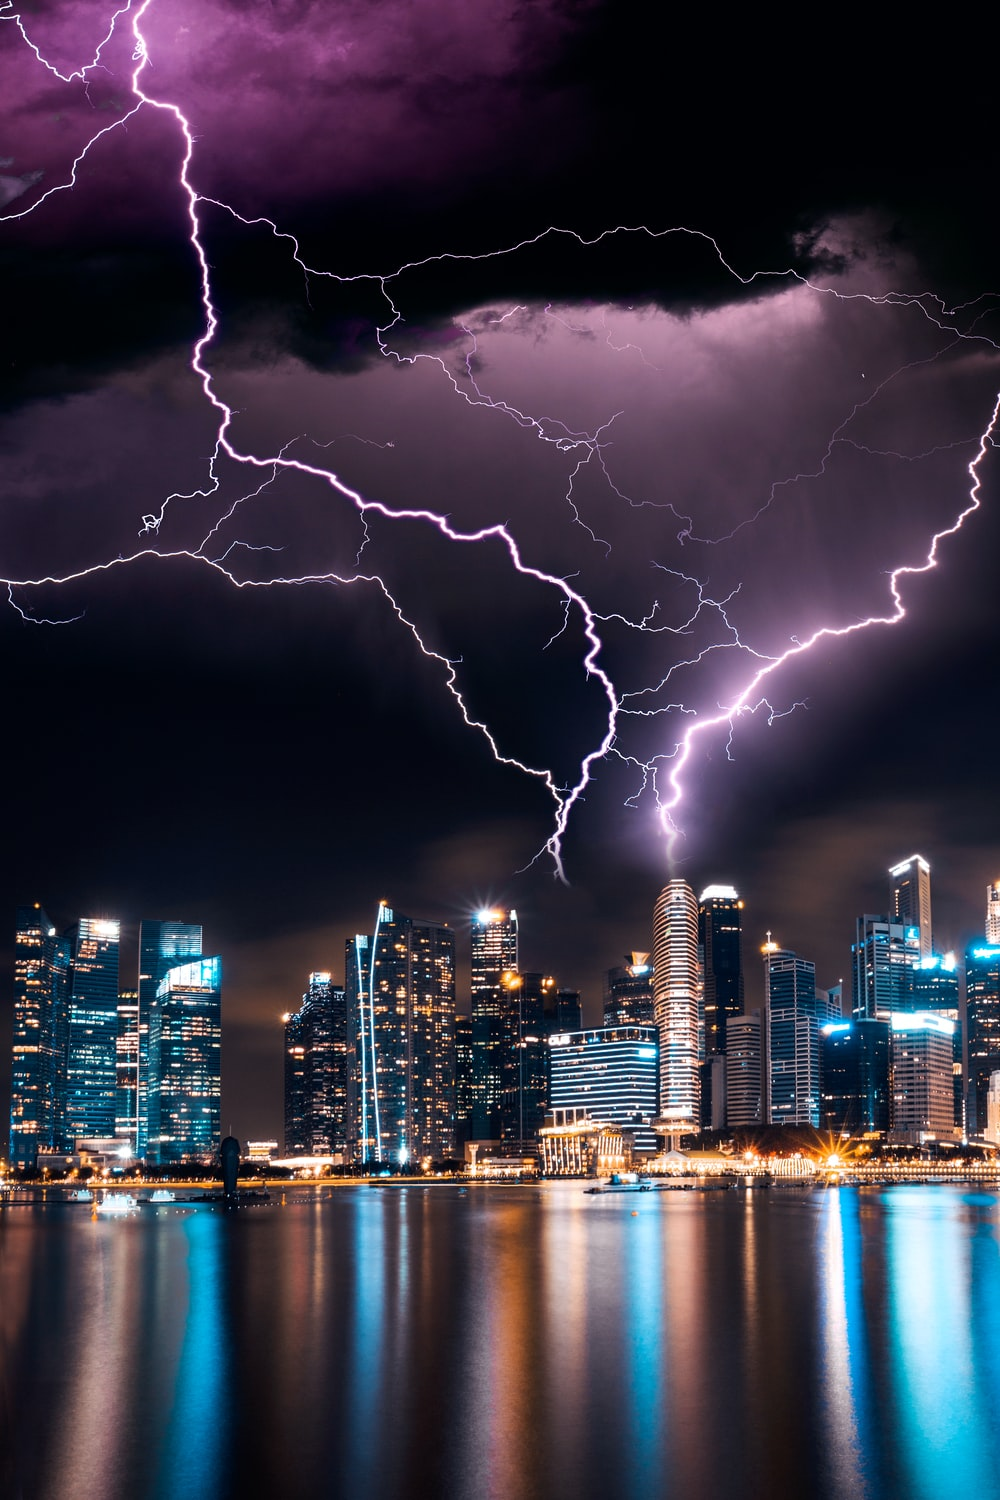 500 lightning images download free images on unsplash